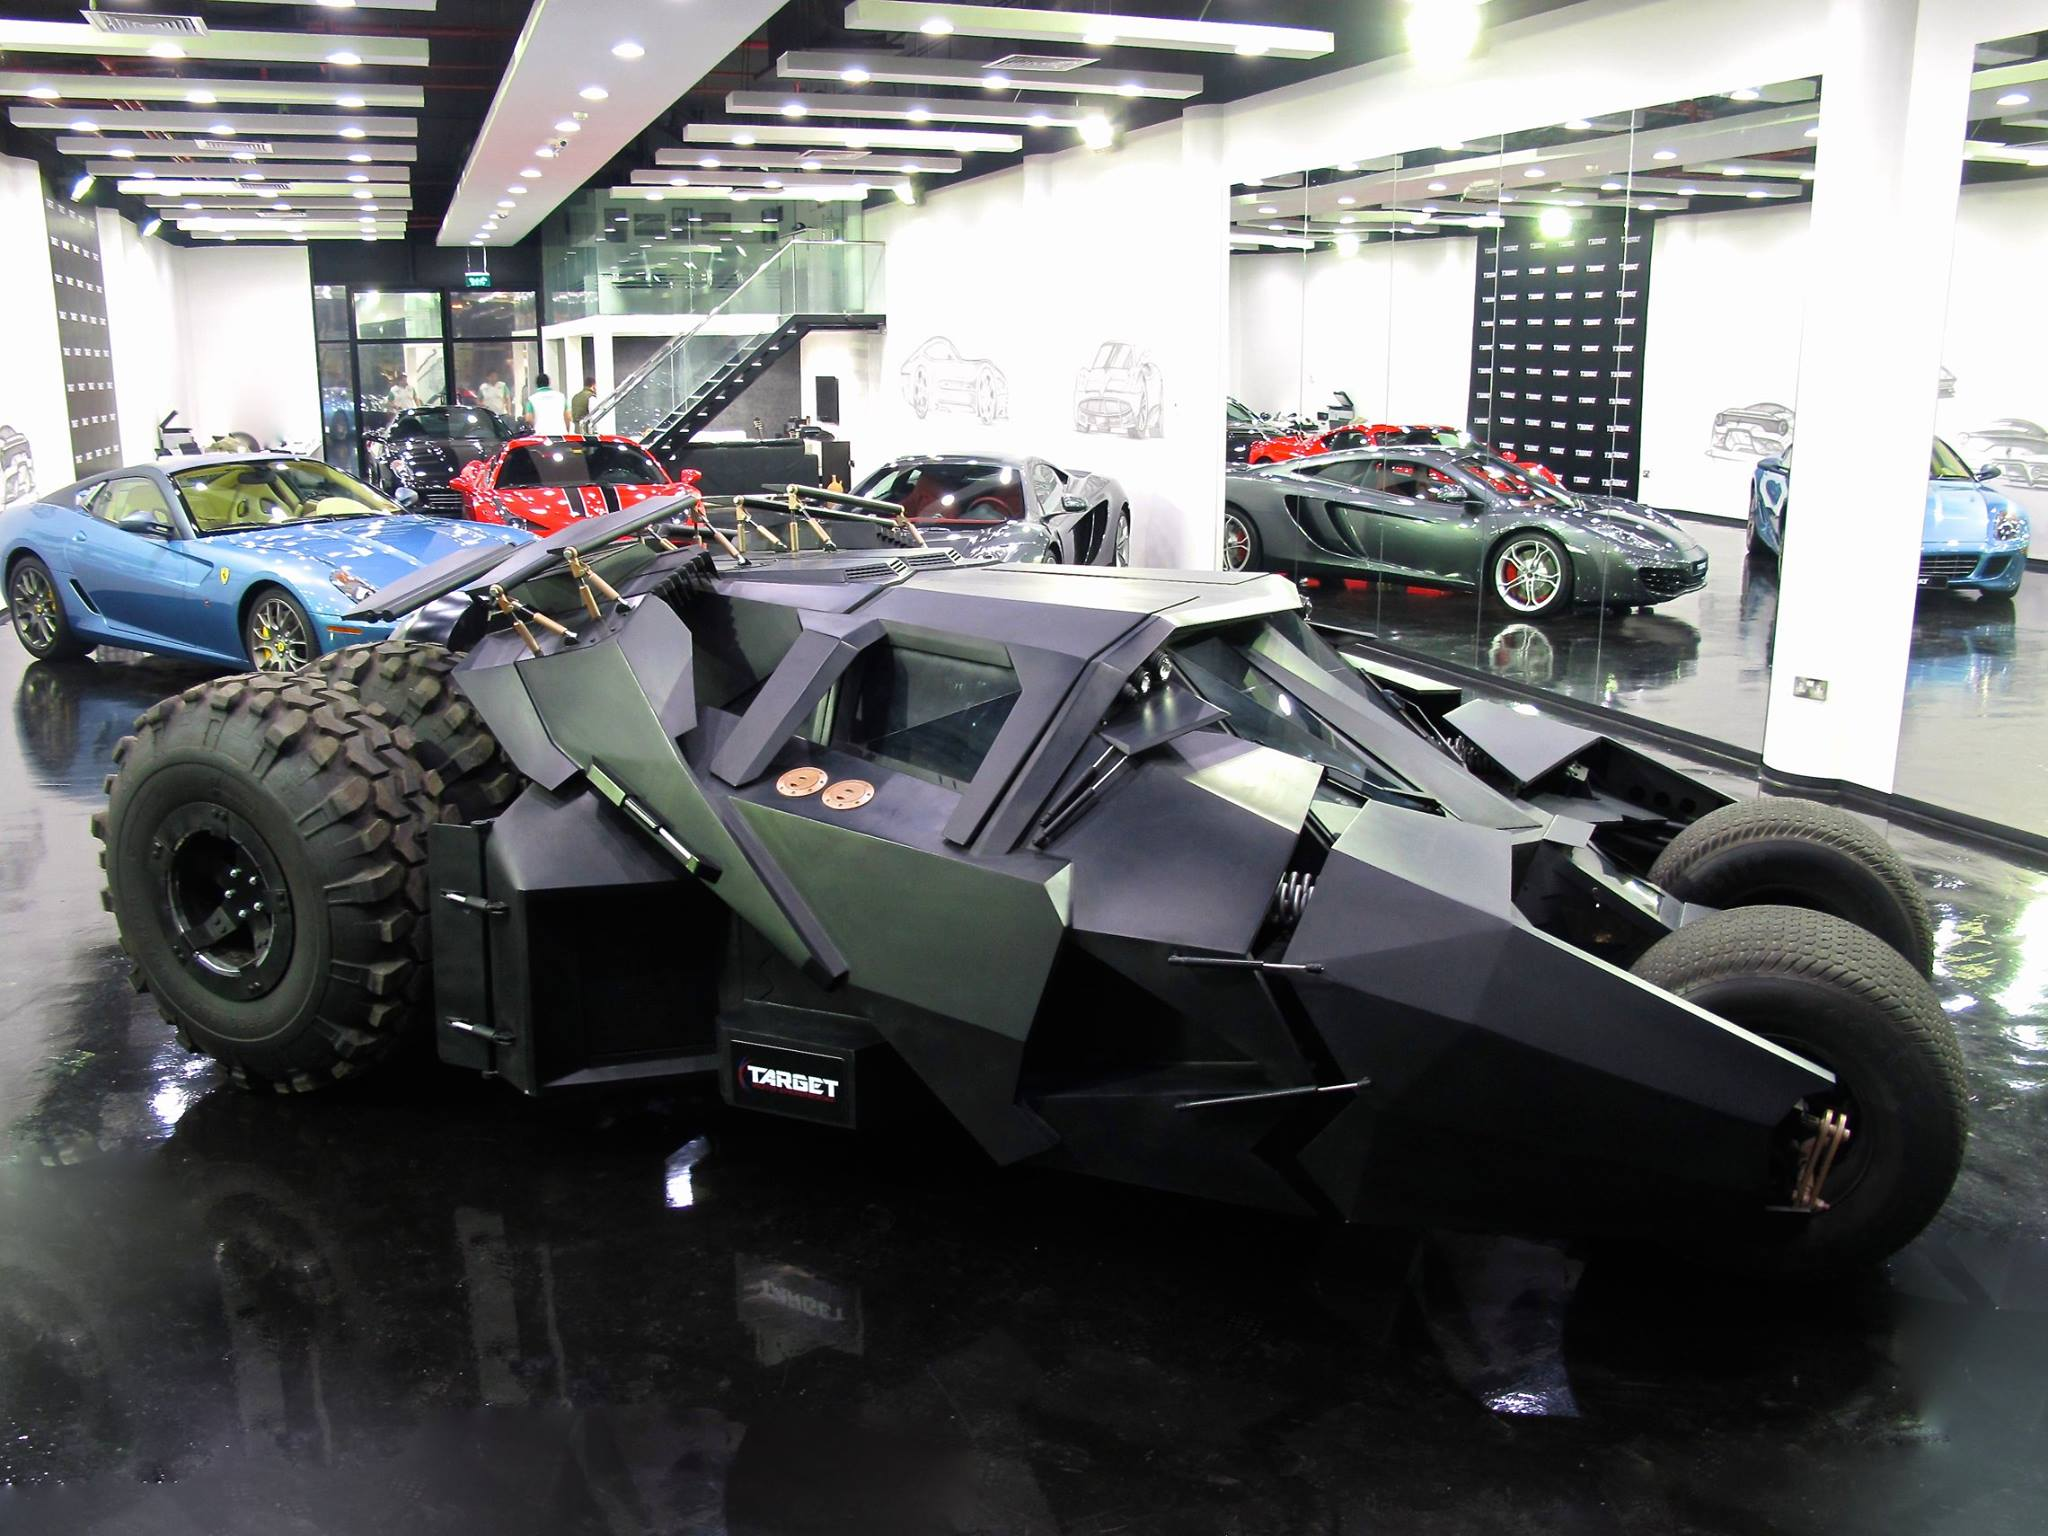 tumbler batmobile and tron bike for sale in dubai luxury dealership autoevolution. Black Bedroom Furniture Sets. Home Design Ideas